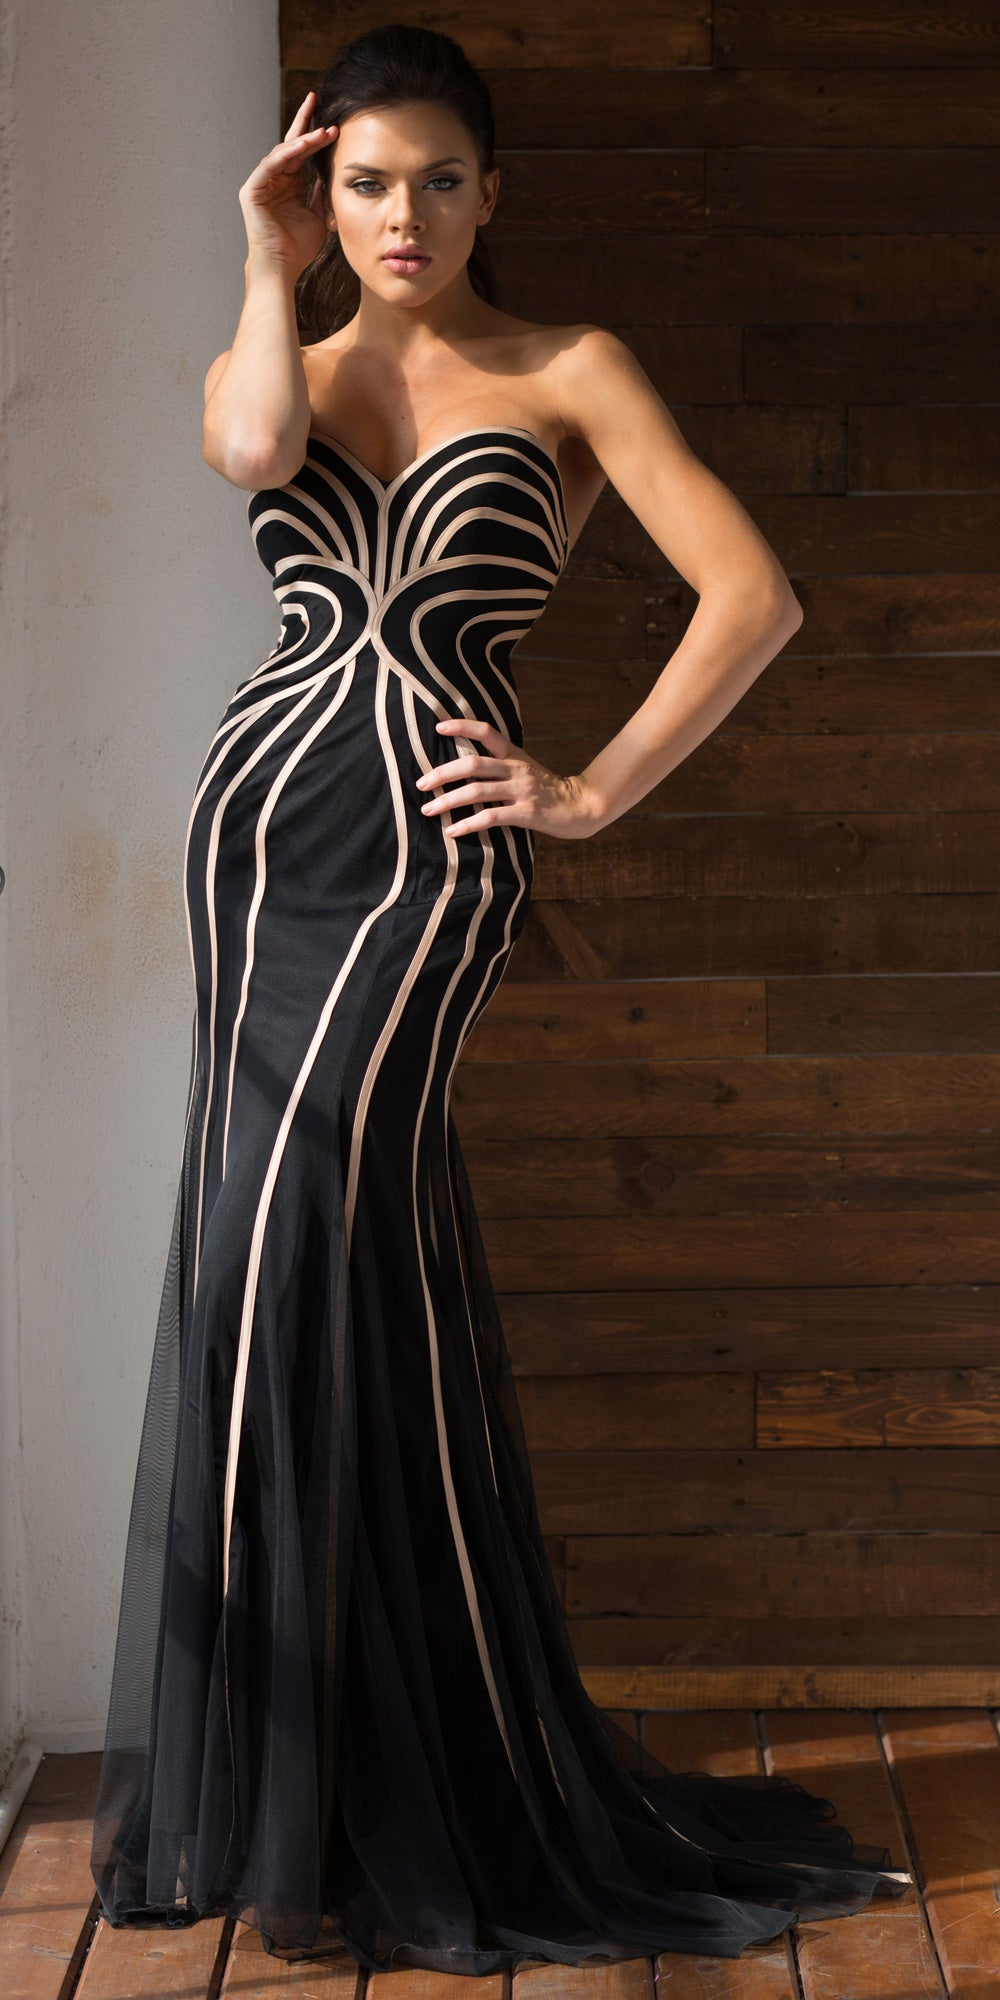 Main image of Strapless Geometric Design Tulle Long Formal Evening Dress